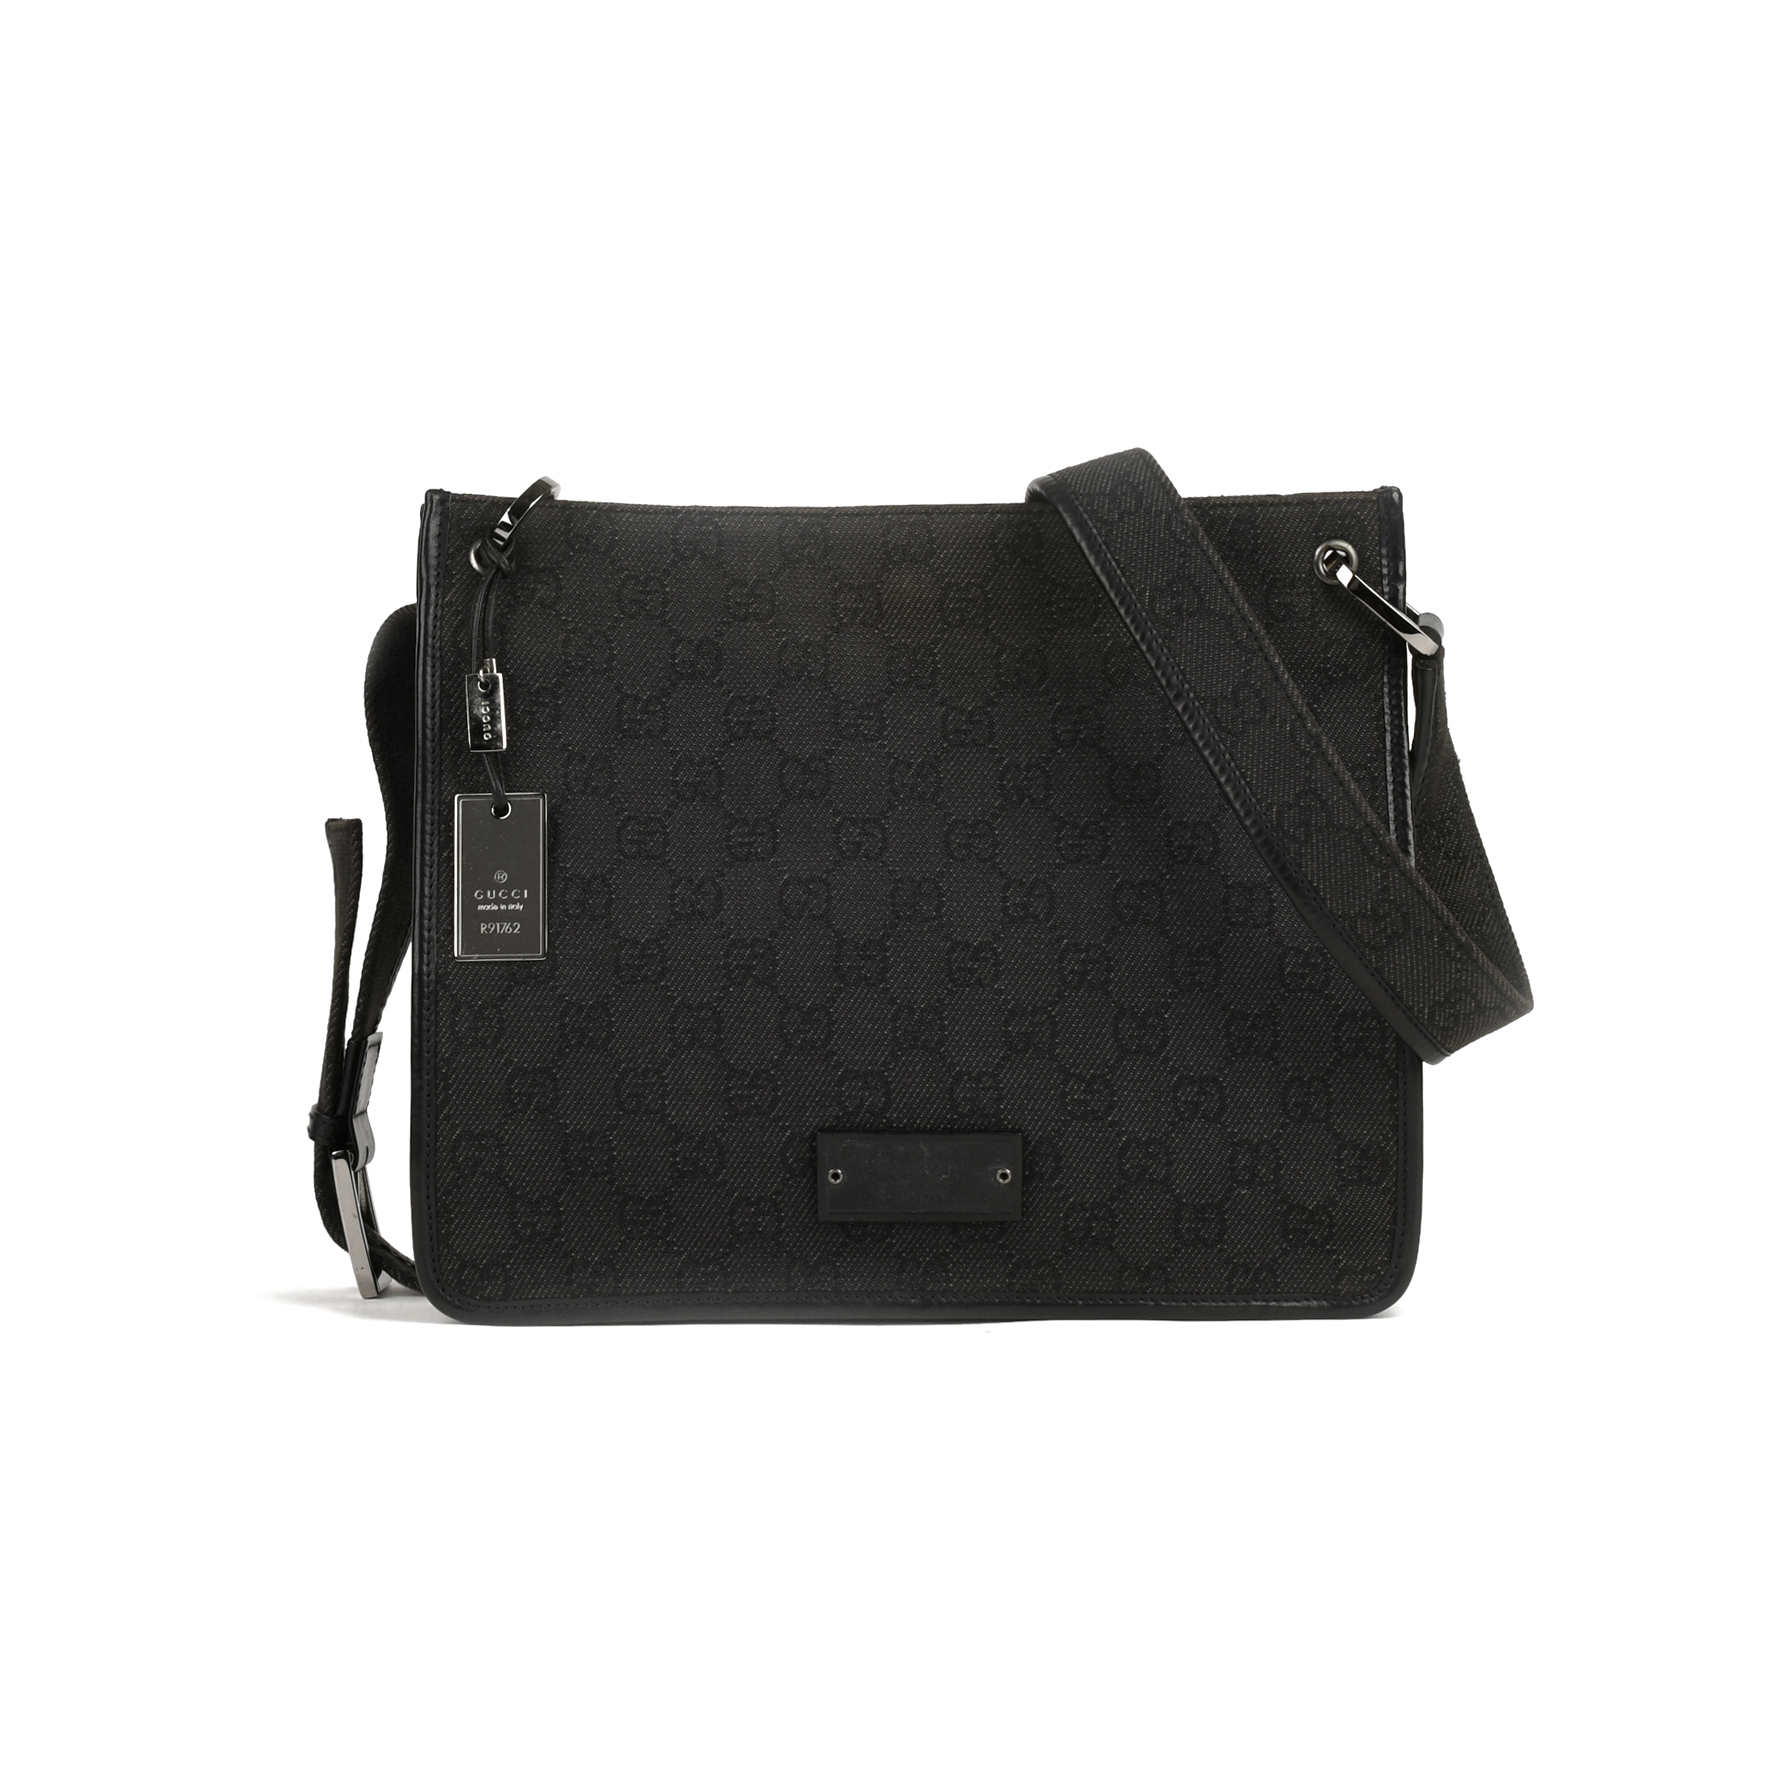 94908ae26839 Authentic Second Hand Gucci GG Canvas Crossbody Bag (PSS-415-00011) | THE  FIFTH COLLECTION